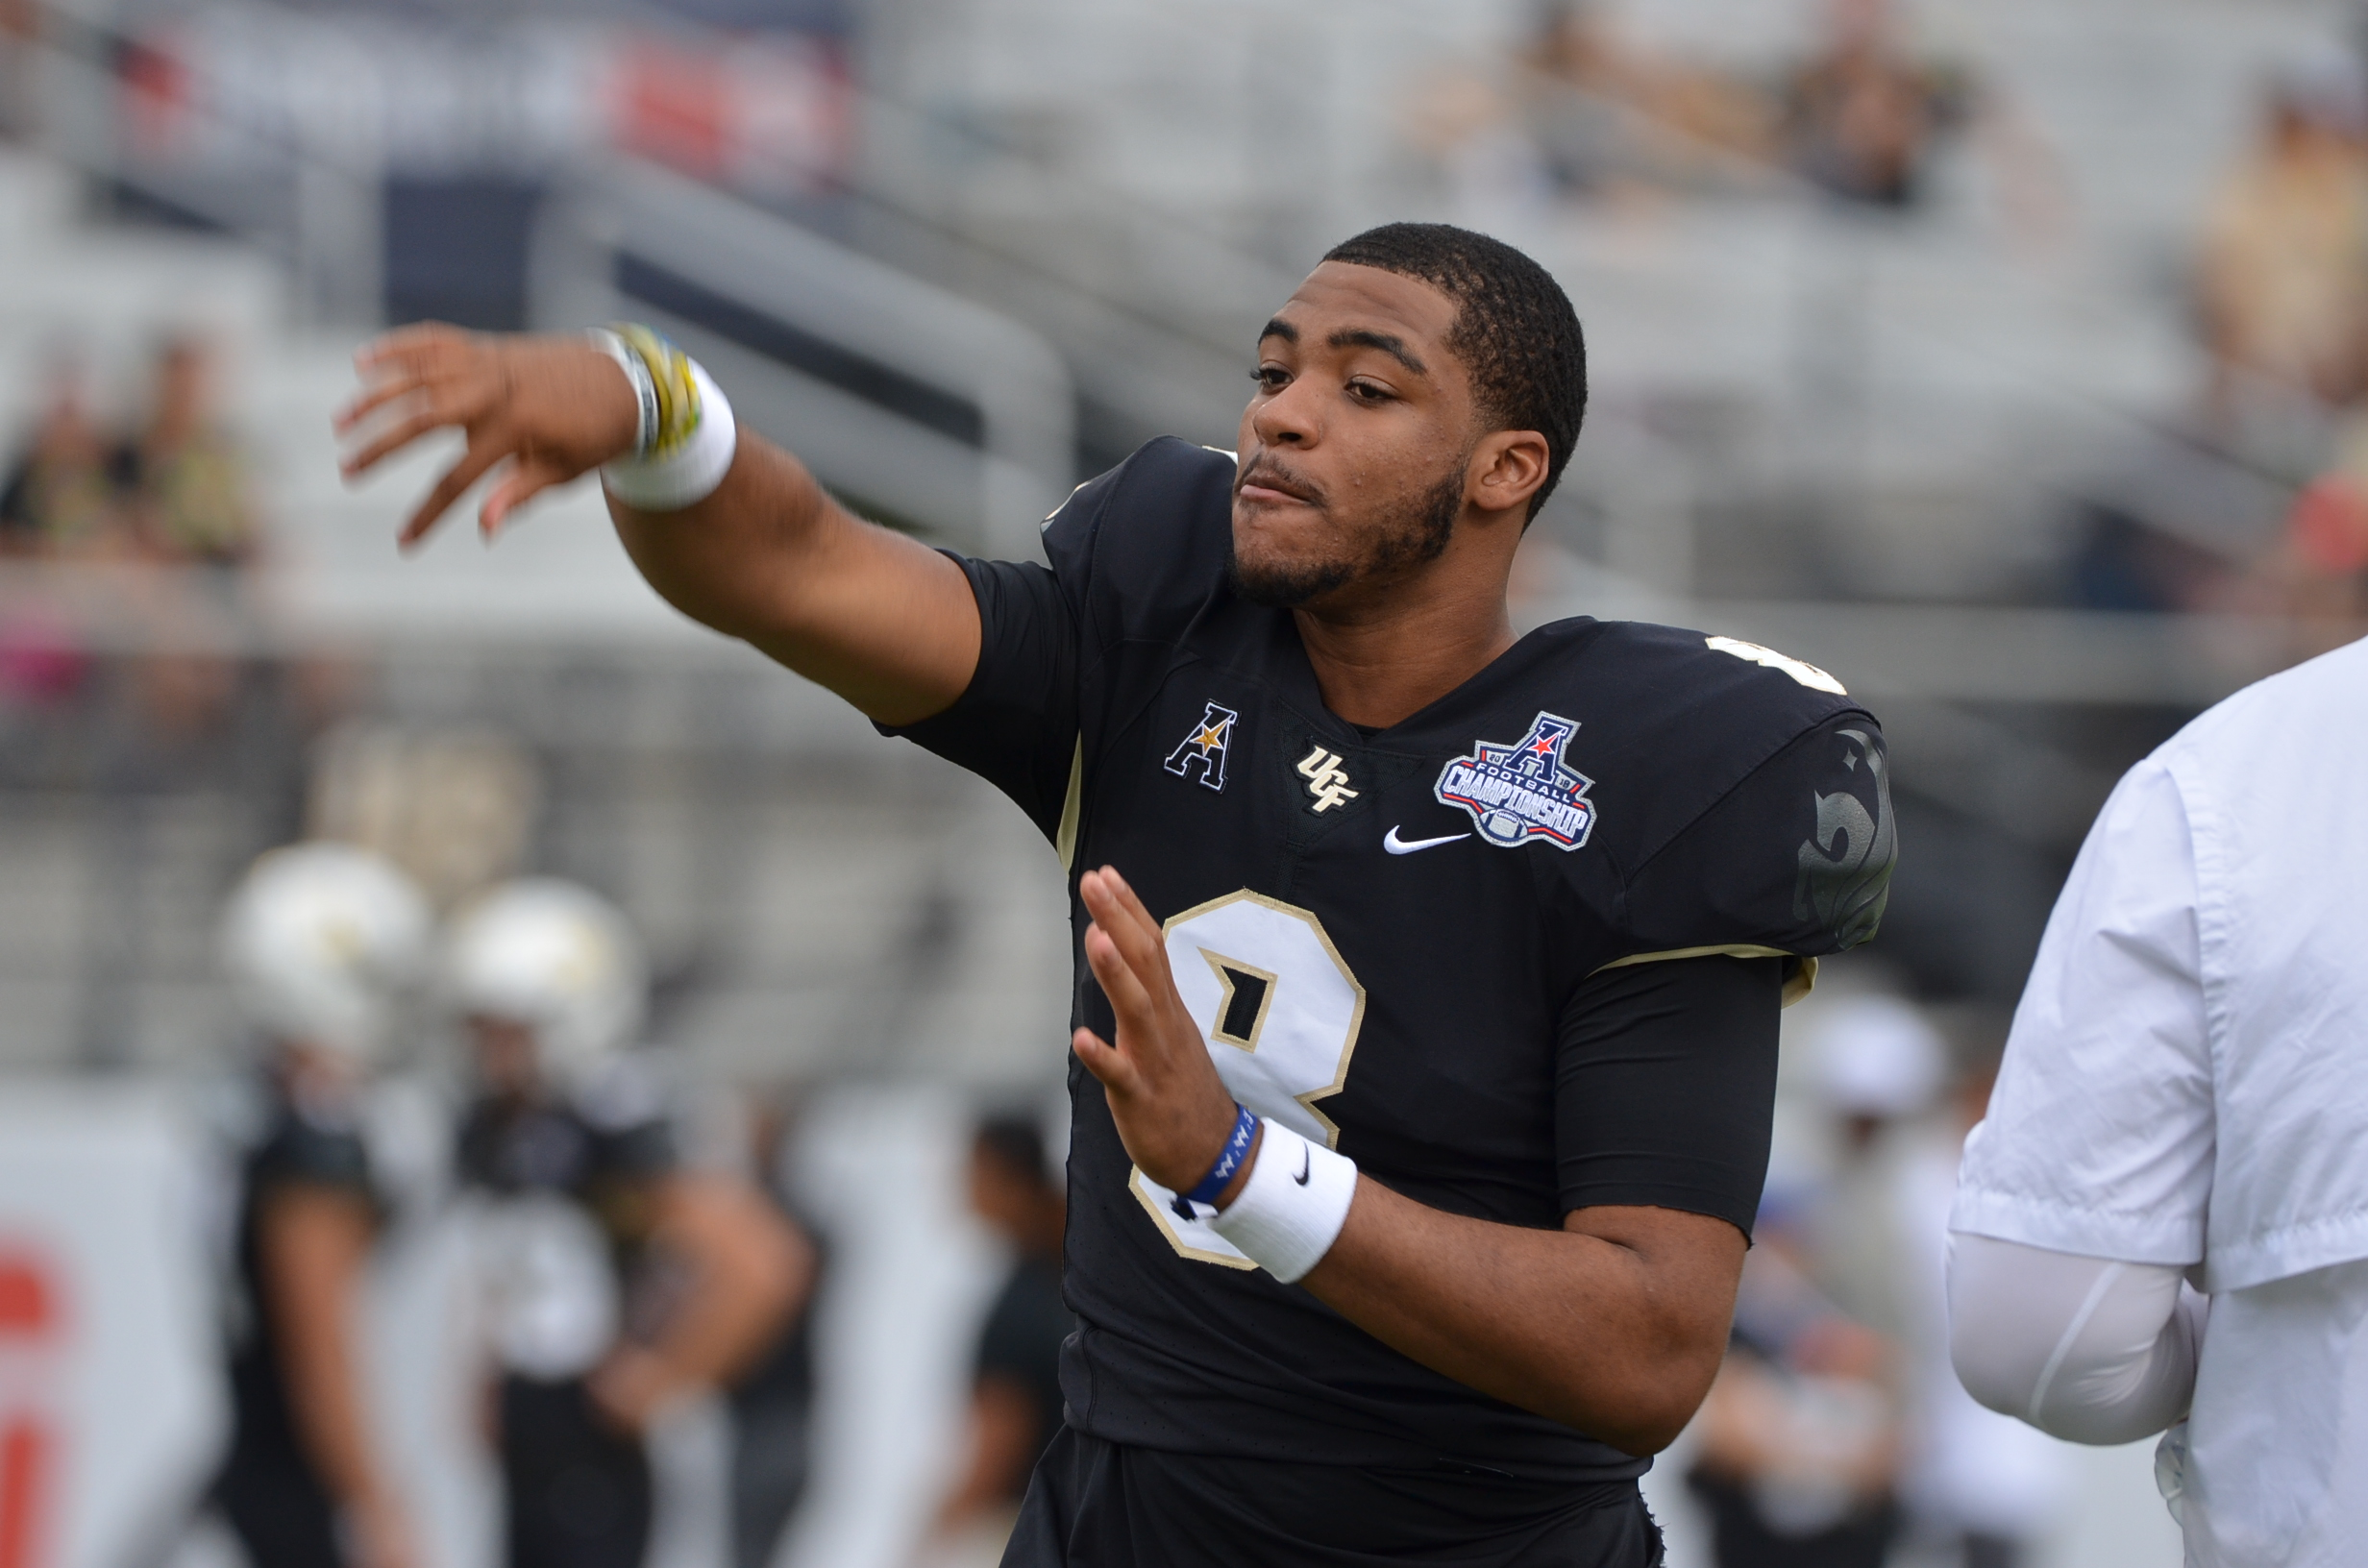 UCF QB Suffers Off-Season Injury, Will Not Participate In Training Camp